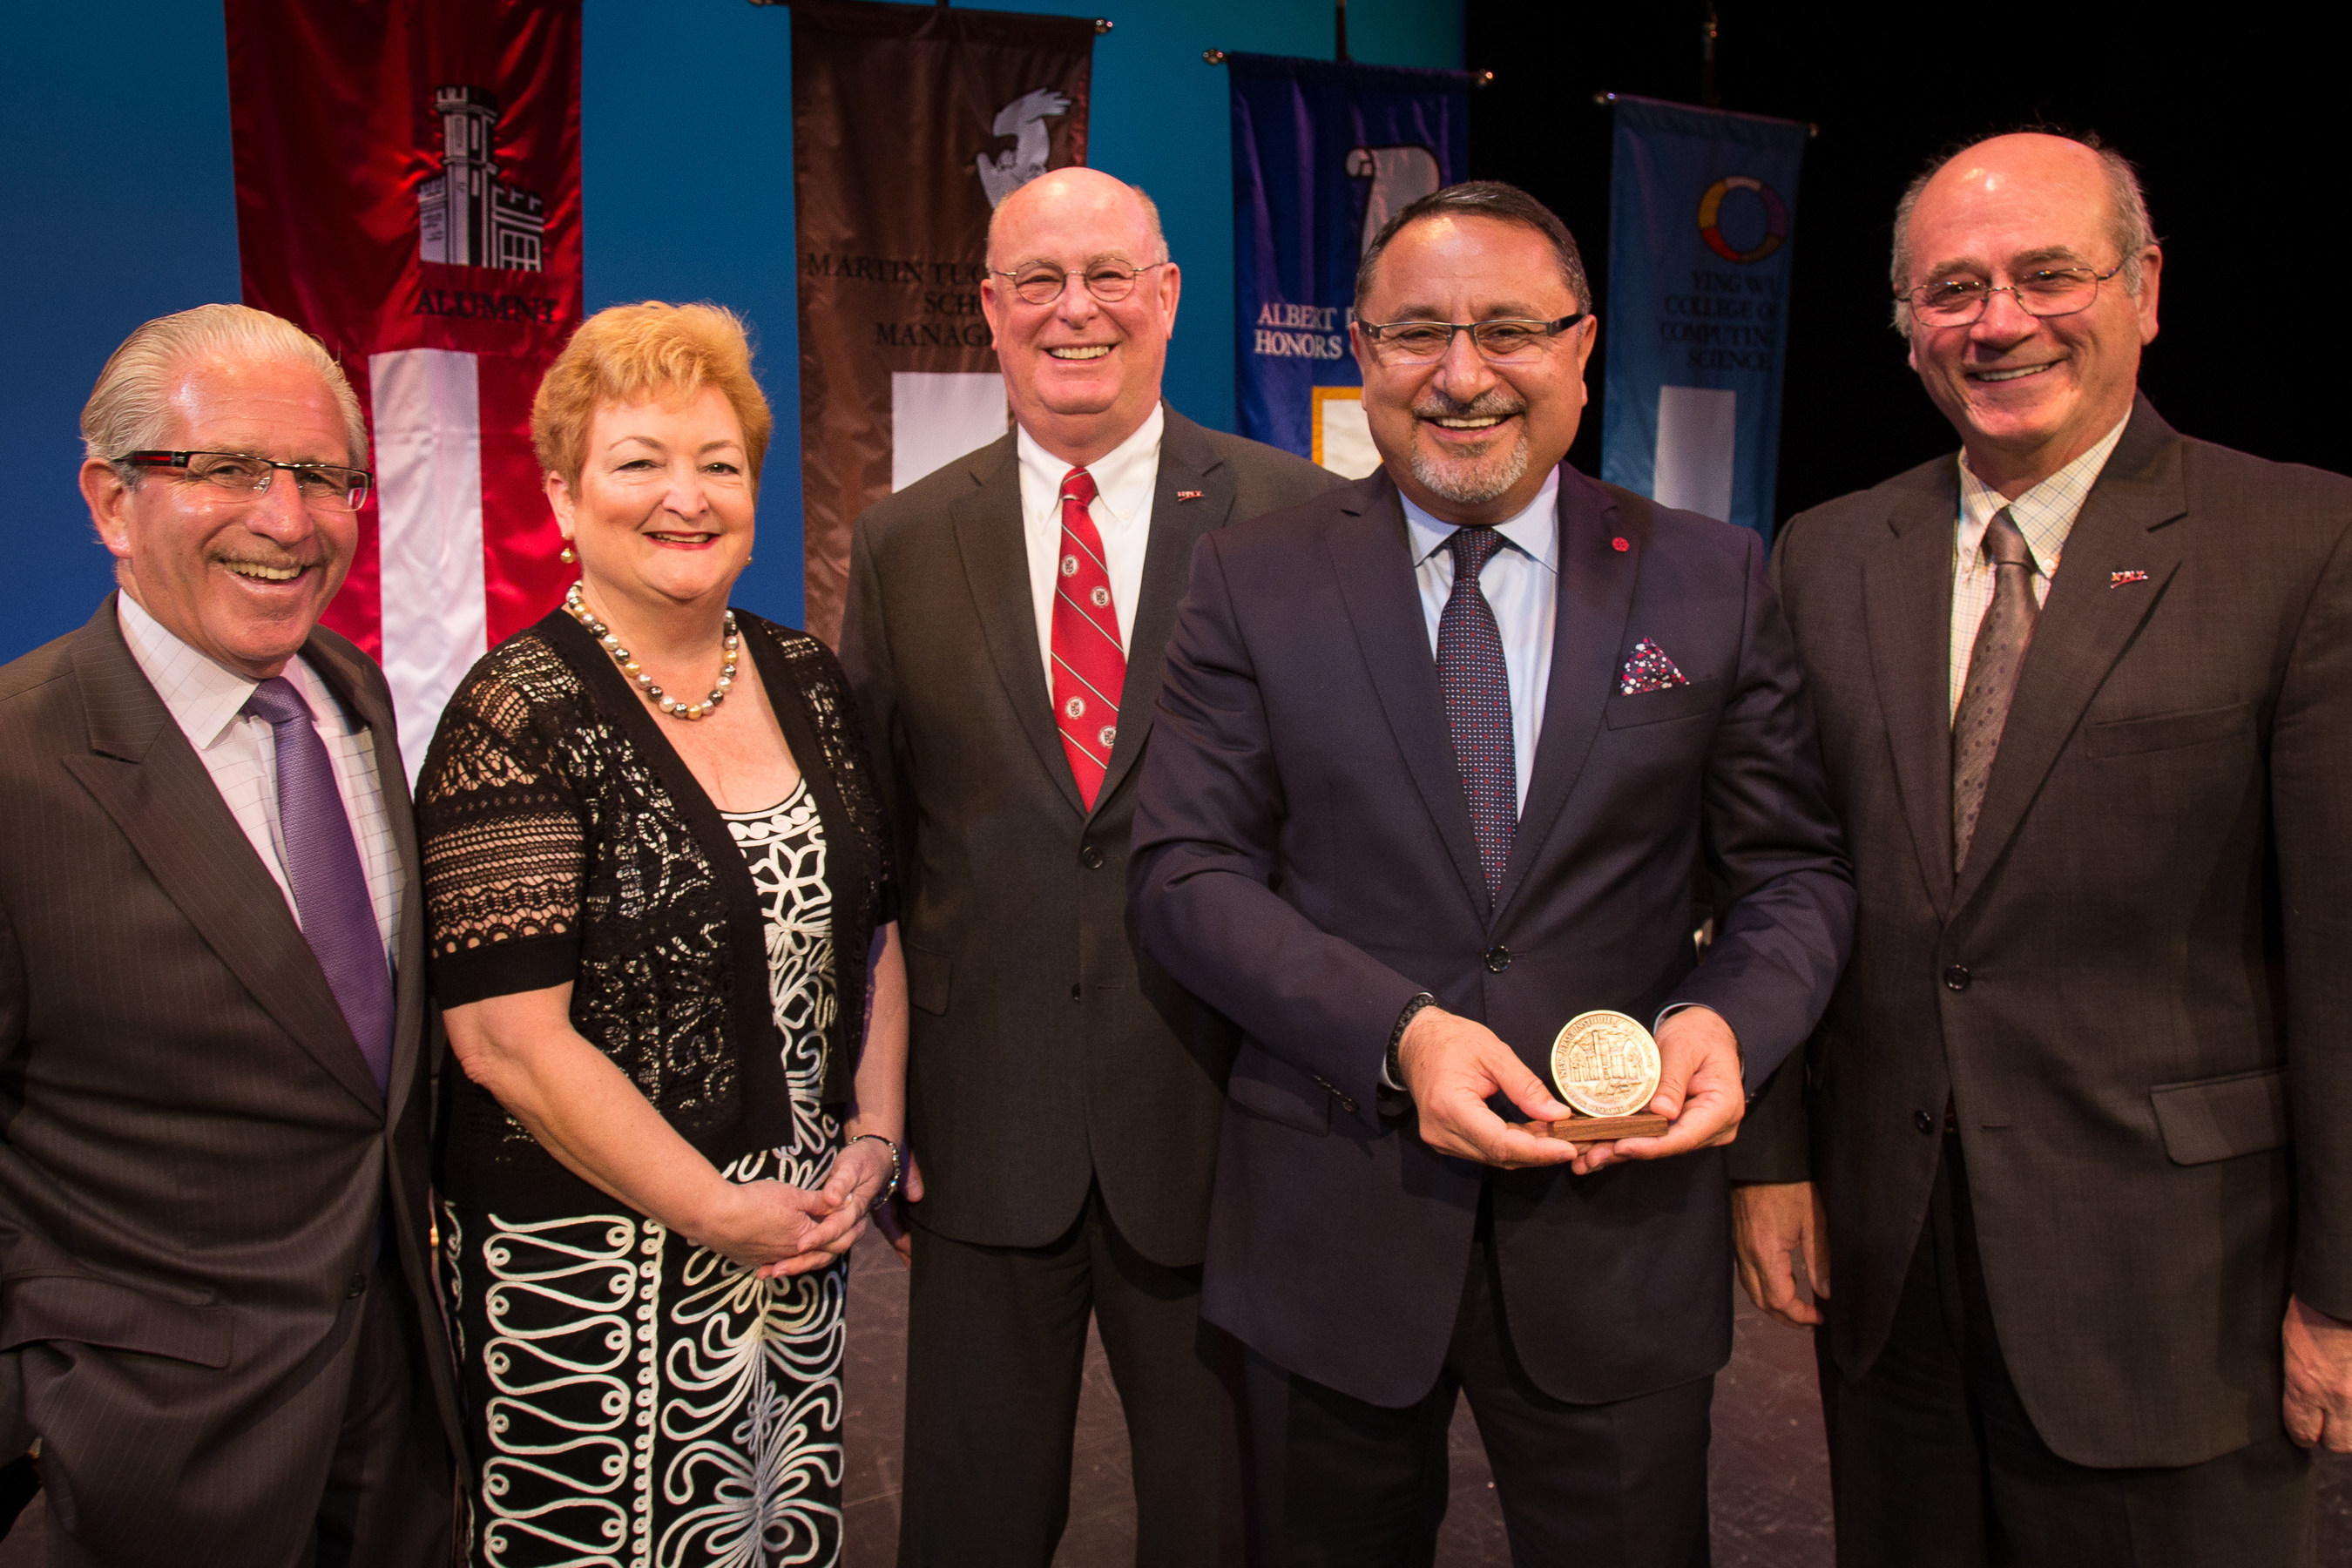 Dr. Ehsan Bayat, Founder And Chairman Of The Bayat Group, Presented 2016 Alumni Achievement Award From The New Jersey Institute Of Technology